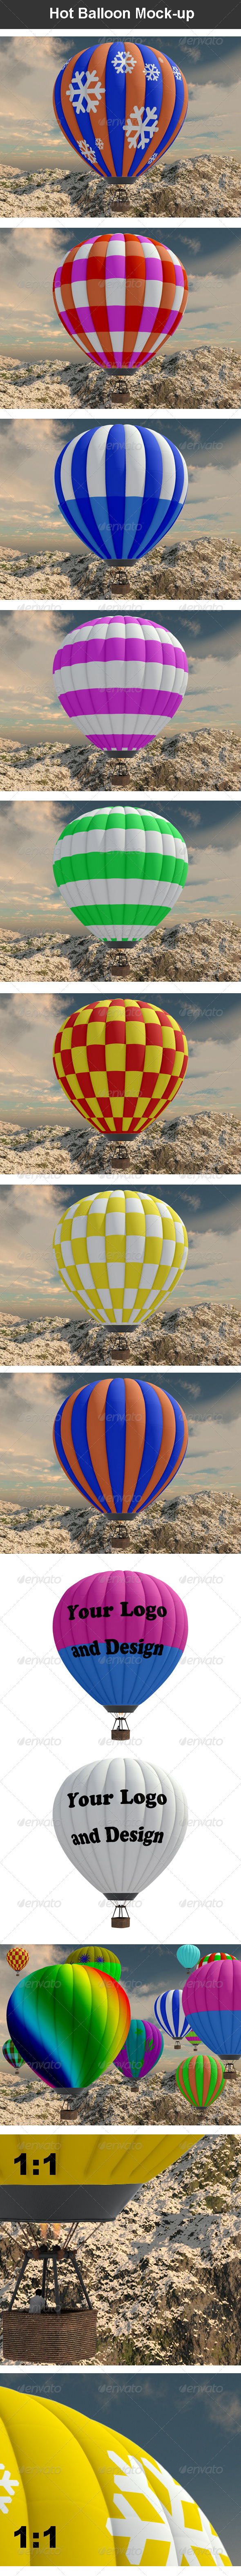 Hot Balloon Mock-up - Miscellaneous Product Mock-Ups